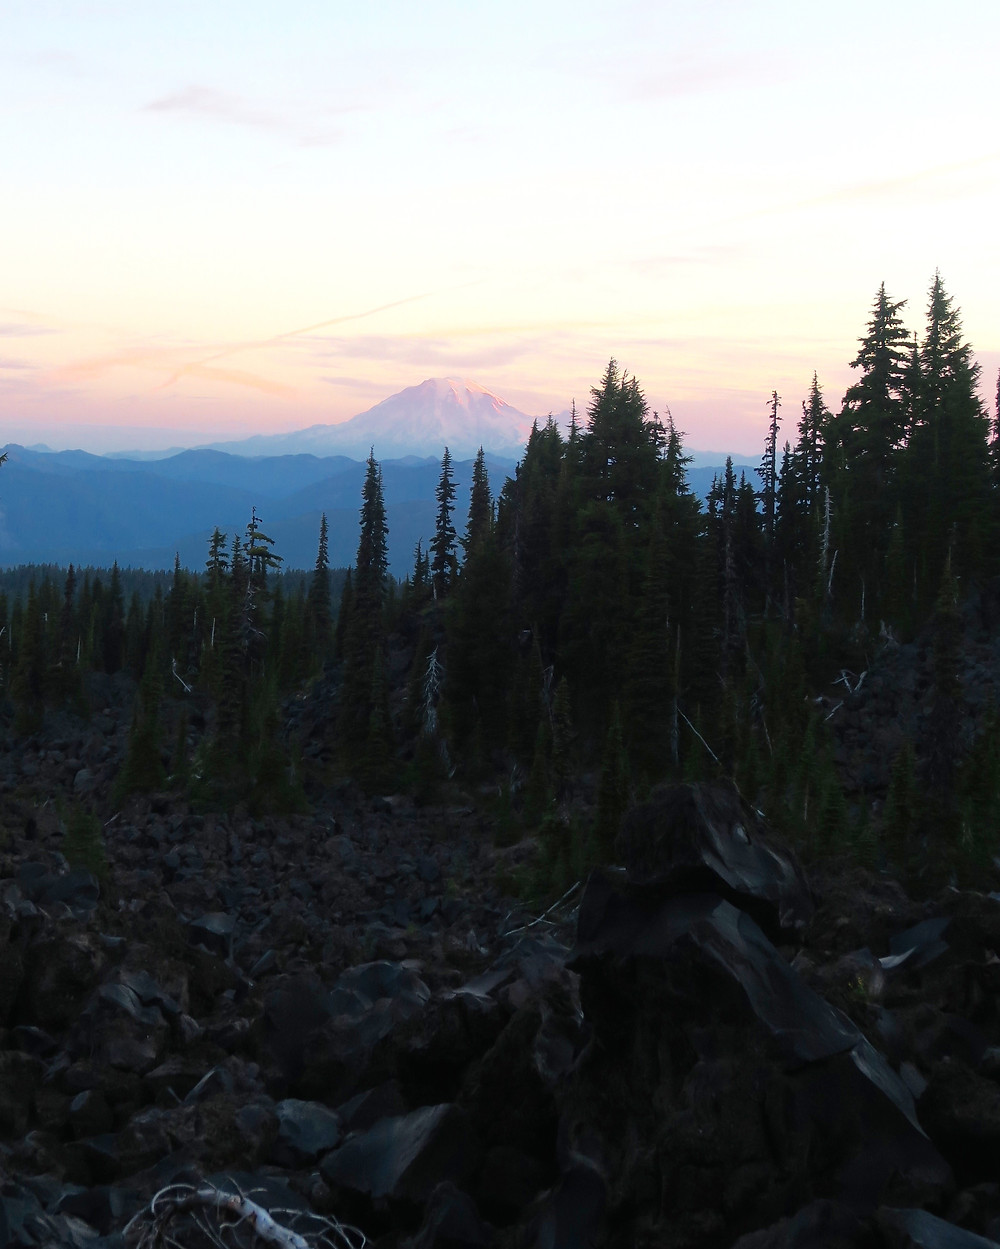 A pastel pink glow edges the horizon with a large but distant snowy mountain, the foreground is covered in dark jagged rocks edged by a row of pine trees